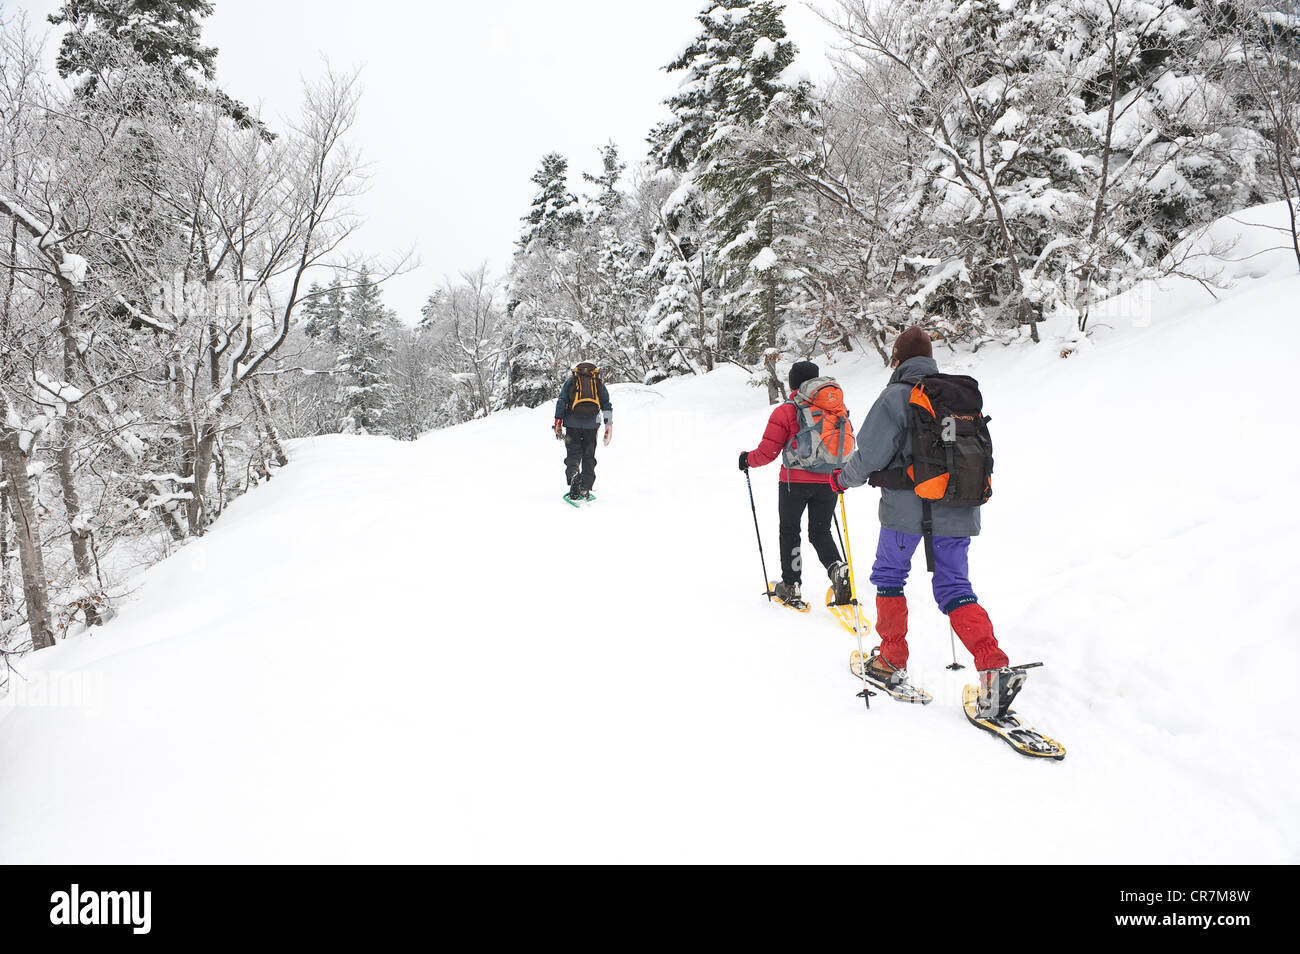 France, Isere, Parc Naturel Regional du Vercors (Natural Regional Park of Vercors), in winter, snowshoes hikking - Stock Image